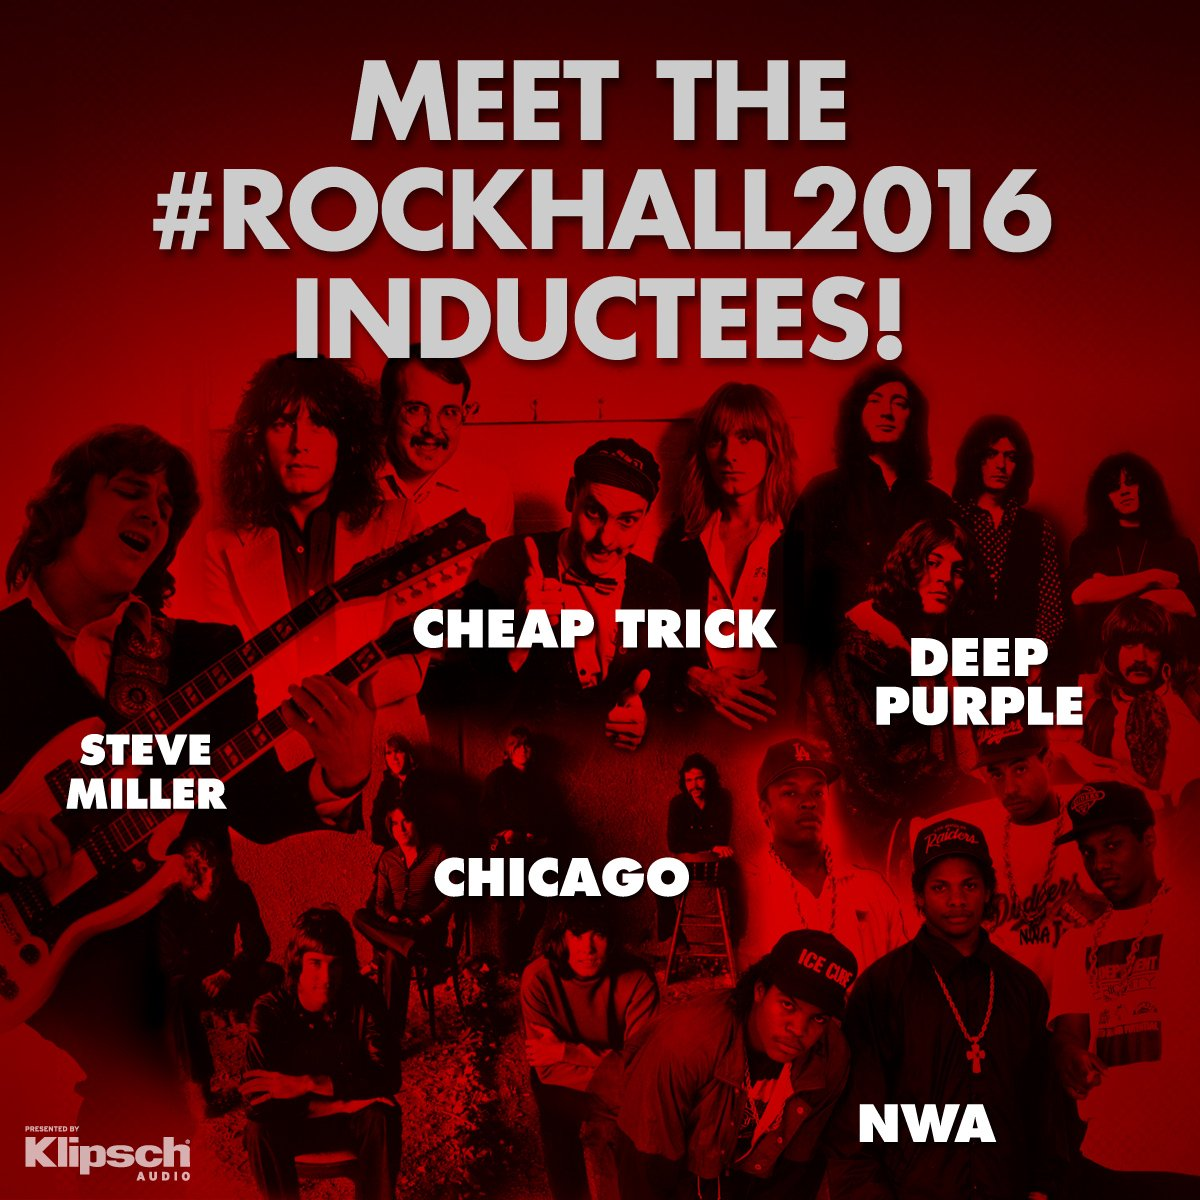 The wait is over! Meet the #RockHall2016 Inductees: @cheaptrick, @chicagotheband, @_DeepPurple, @SMBofficial + #NWA! https://t.co/50Lg8xnpKt